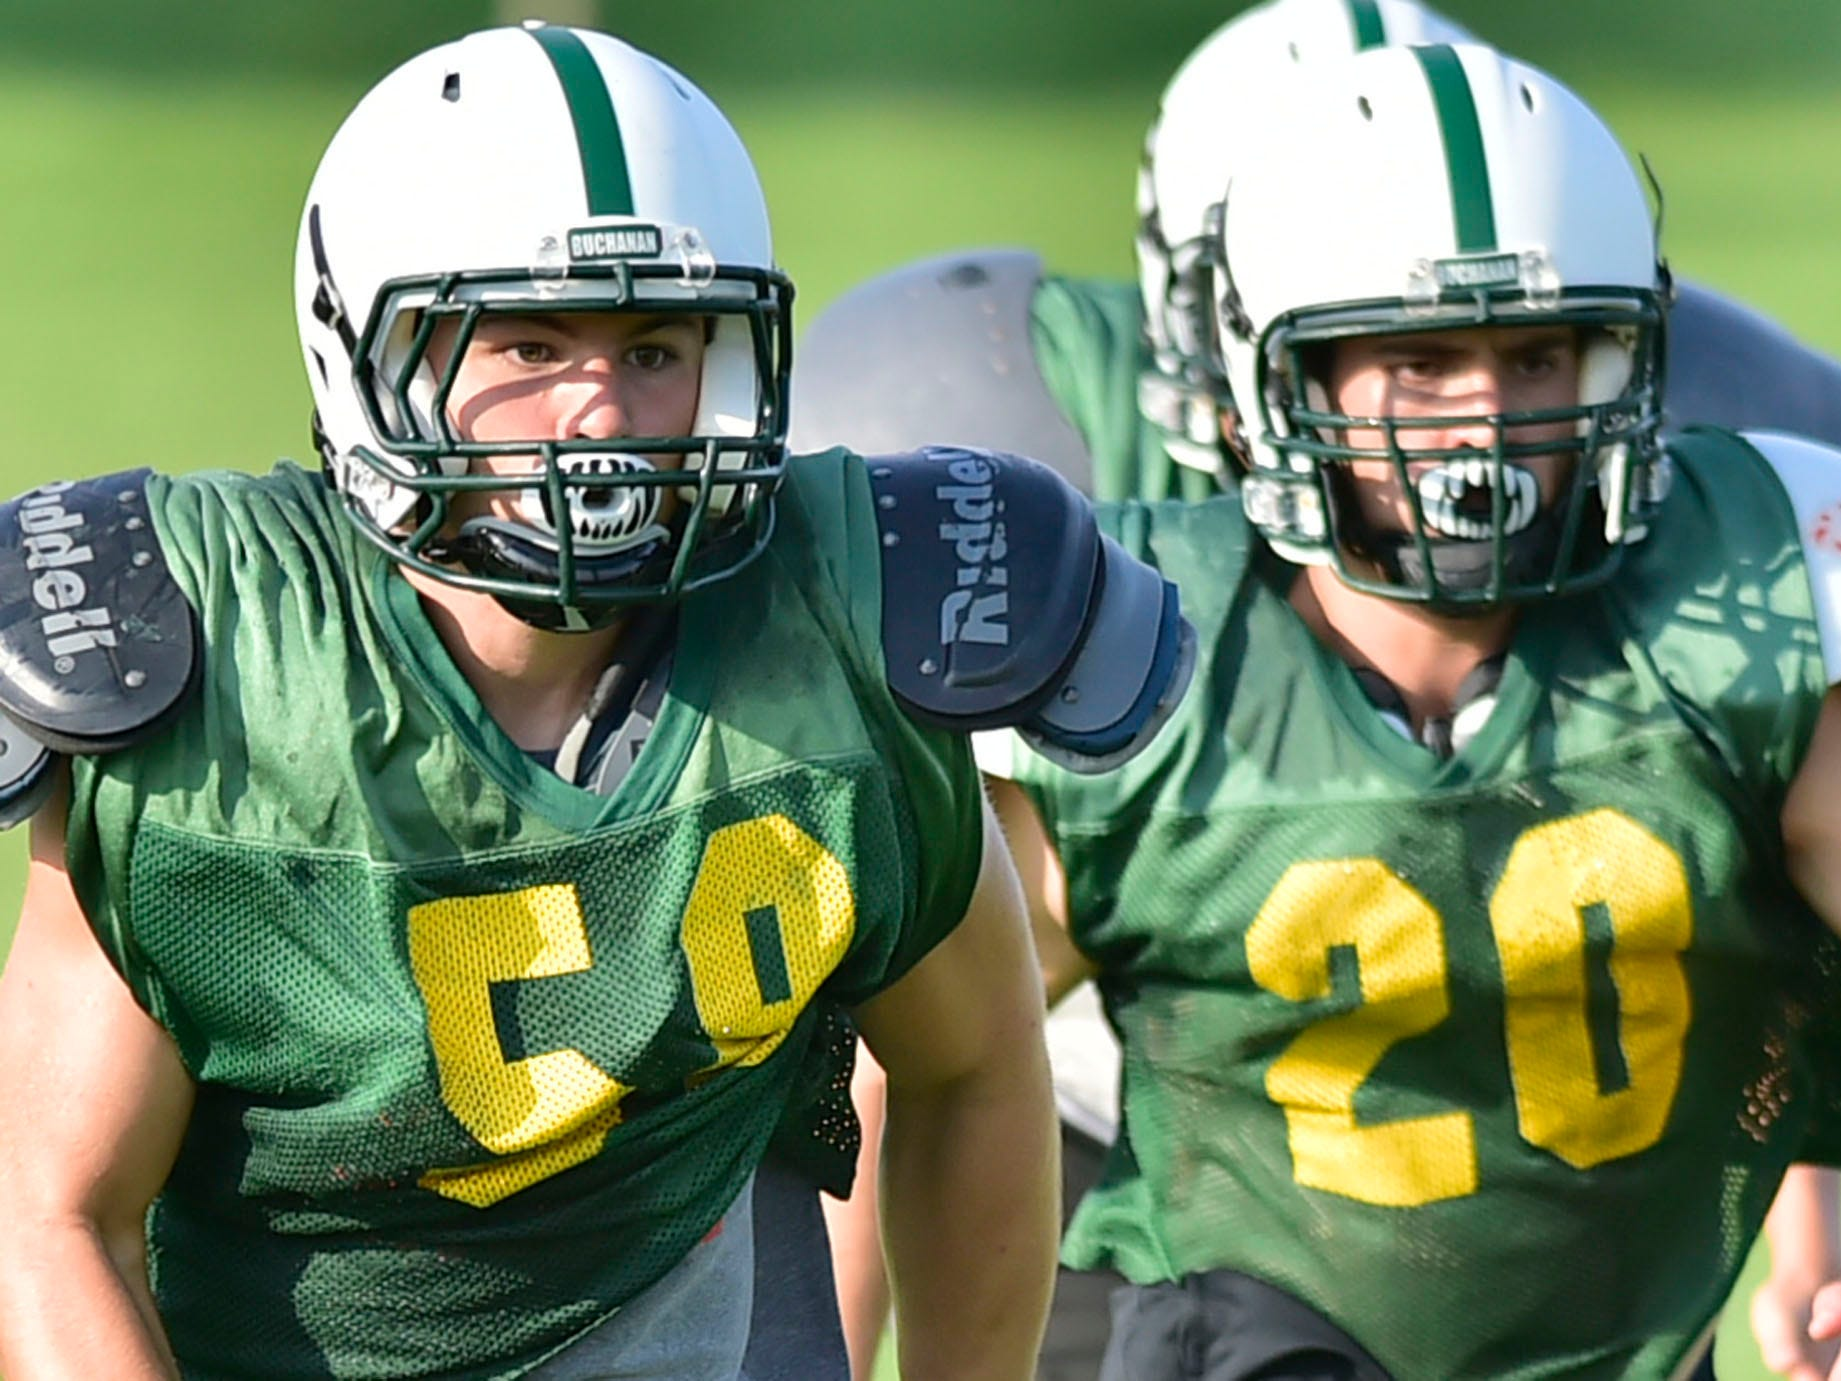 Cormac Houpt, left, and Scott Seburn run trough drills during practice. James Buchanan High School football players practice on Wednesday, August 8, 2018.